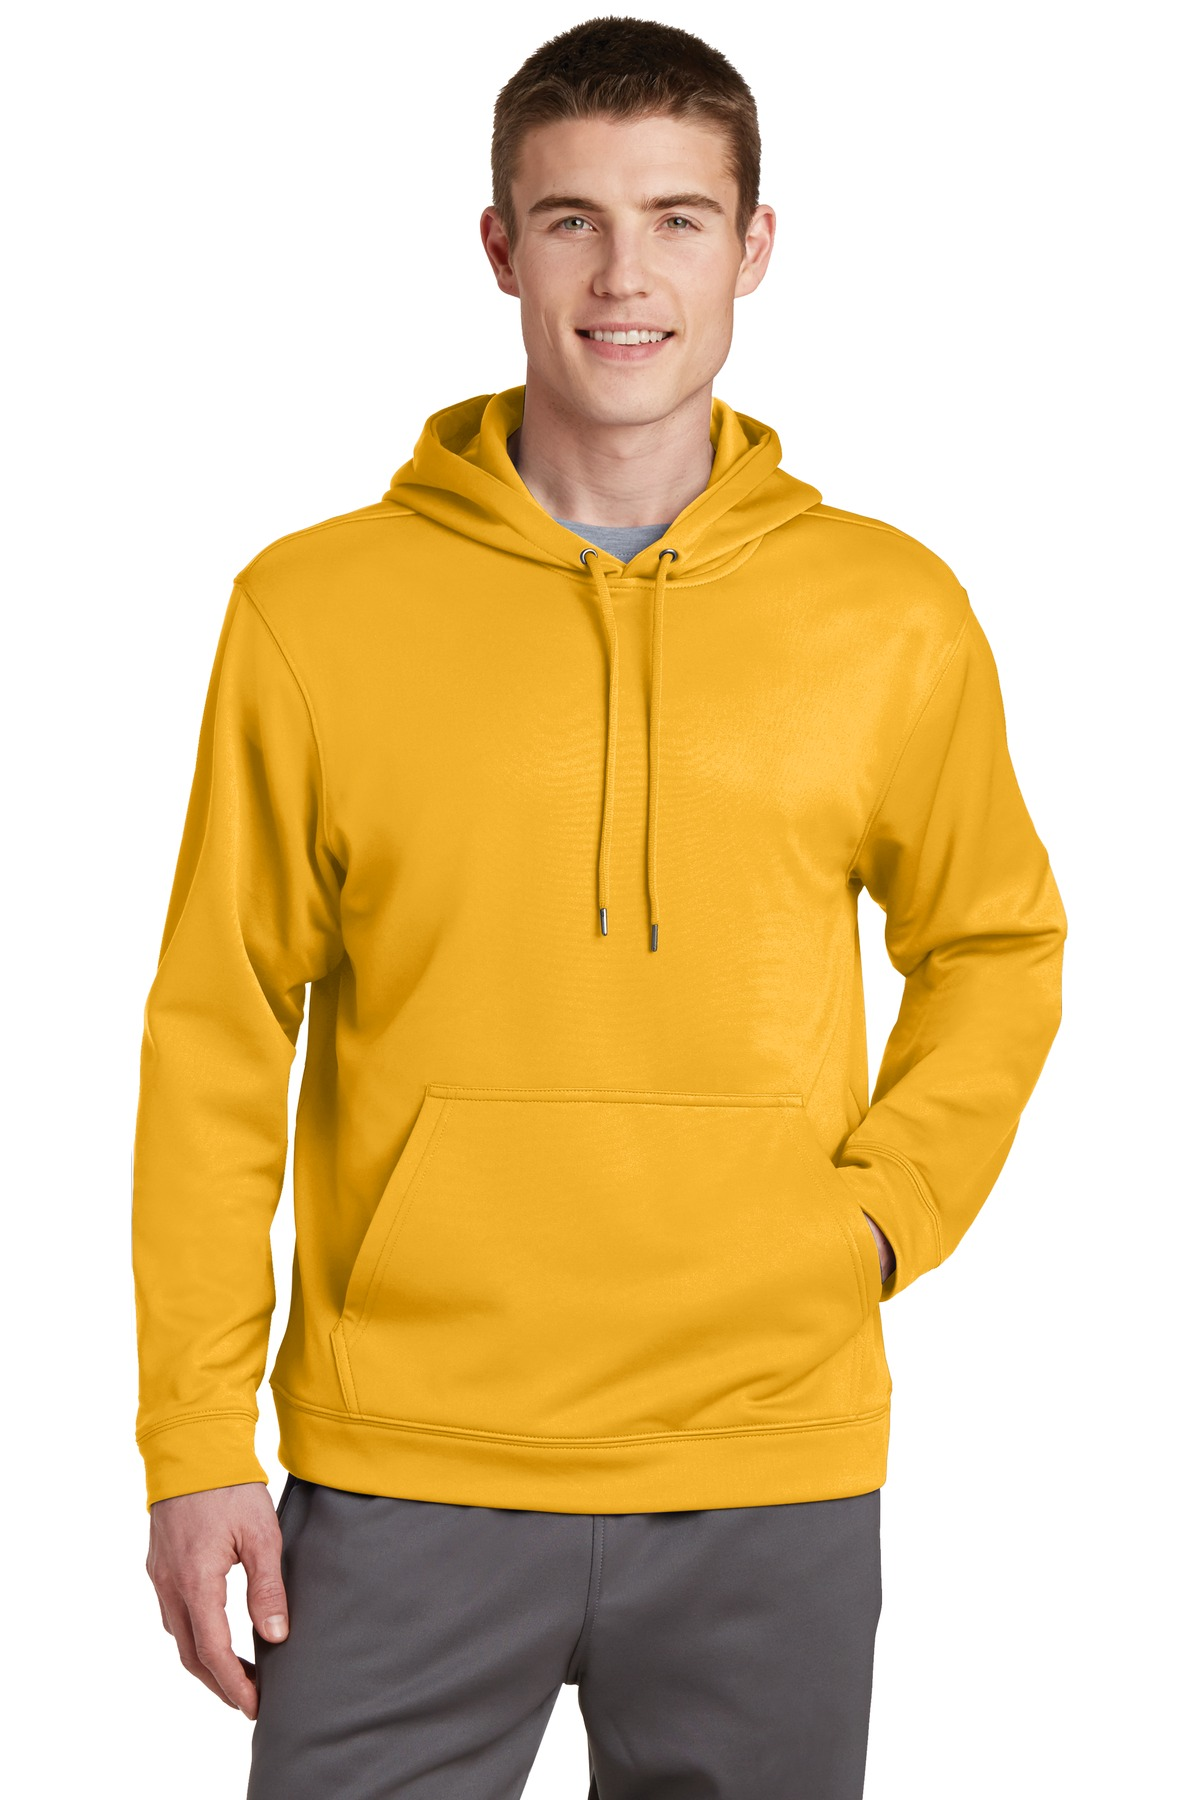 Sport-Tek ®  Sport-Wick ®  Fleece Hooded Pullover.  F244 - Gold